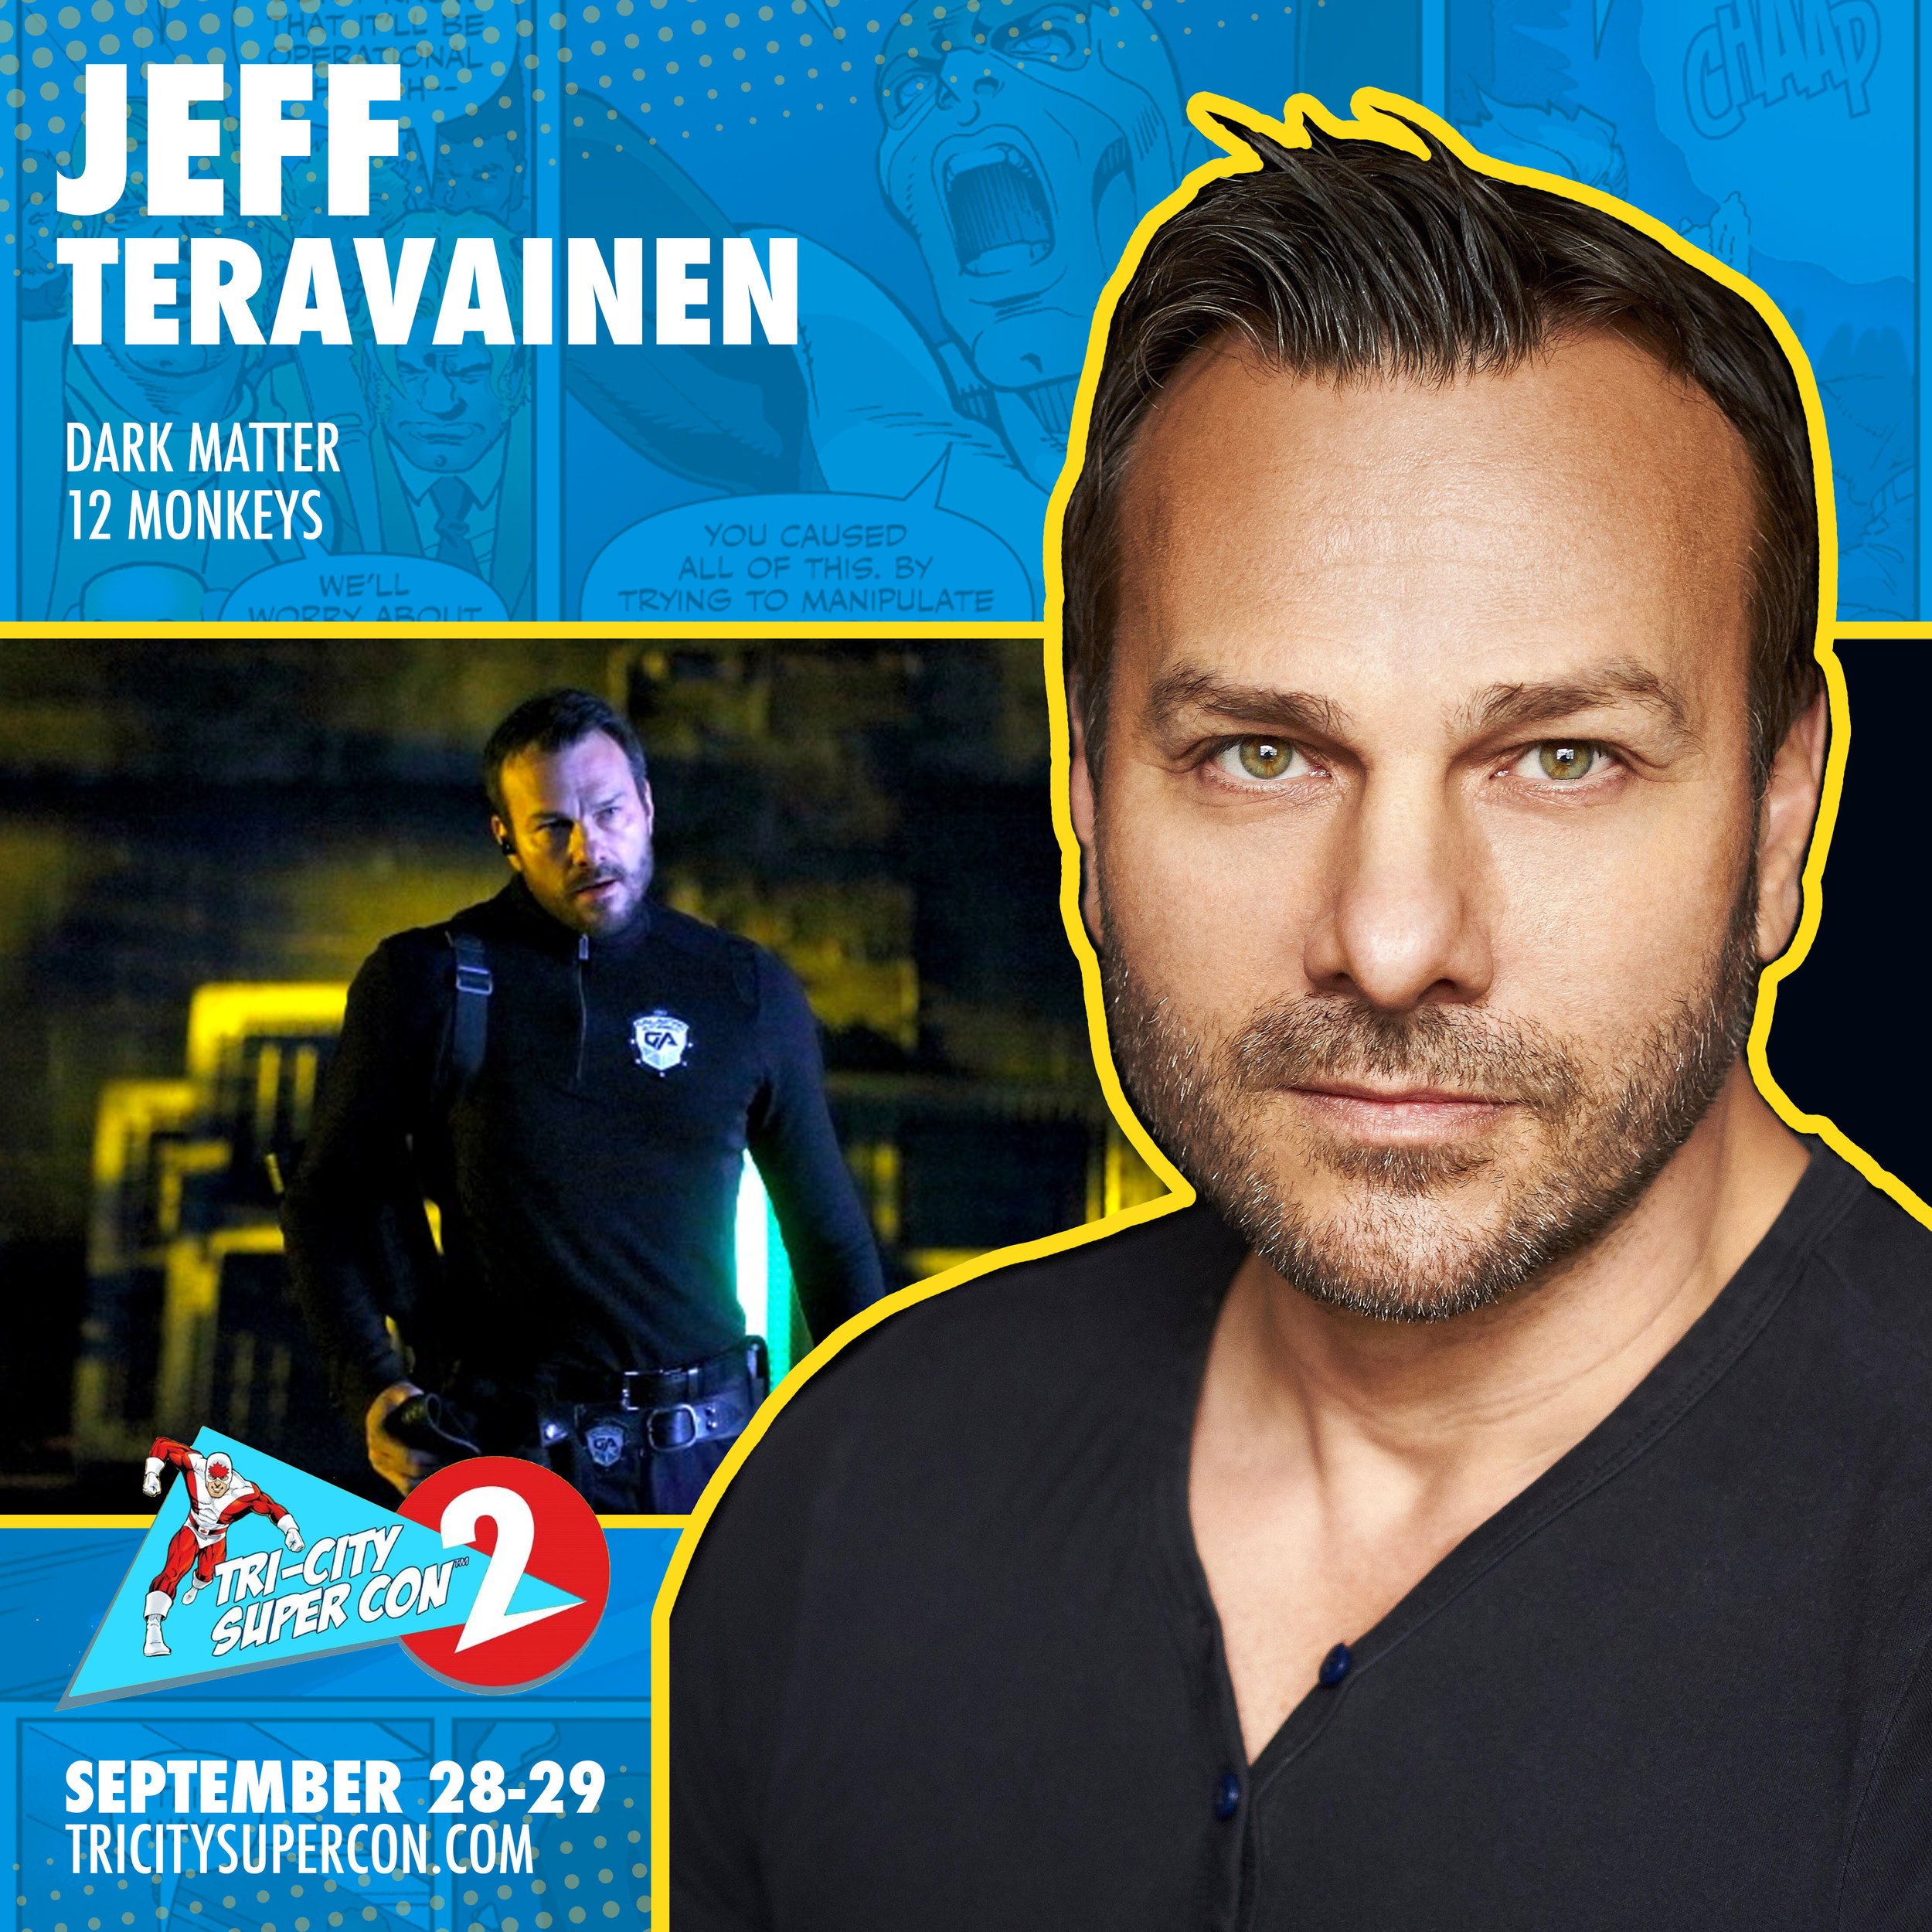 "Jeff Teravainen   is best known for his recurring roles on the TV show   Dark Matter   as Lieutenant Ander and as Agent Stack on   12 Monkeys  . He gained attention as the main bad guy in 2018's "" The Christmas Chronicles"" on Netflix. He is also known as the ""Voice of the Olympics"" for Canadian broadcaster CBC in the 2006 Turino Winter Olympic Games, as well as the 2014 Sochi Winter Olympic Games. In 2014, he was also the ""Voice of the 2014 FIFA World Cup"" in Canada. Jeff also voiced the Intro to CBC's Hockey Night in Canada for 2 years. Jeff has voiced many characters for best selling video games like   Far Cry 5   as Walker and various cult soldiers.   Tom Clancy's Splinter Cell: Blacklist   in various roles and   Far Cry 2   as Walton Purefoy. In 2019 Jeff is a series regular in the upcoming drama "" Utopia Falls"" soon to be released in early 2020."